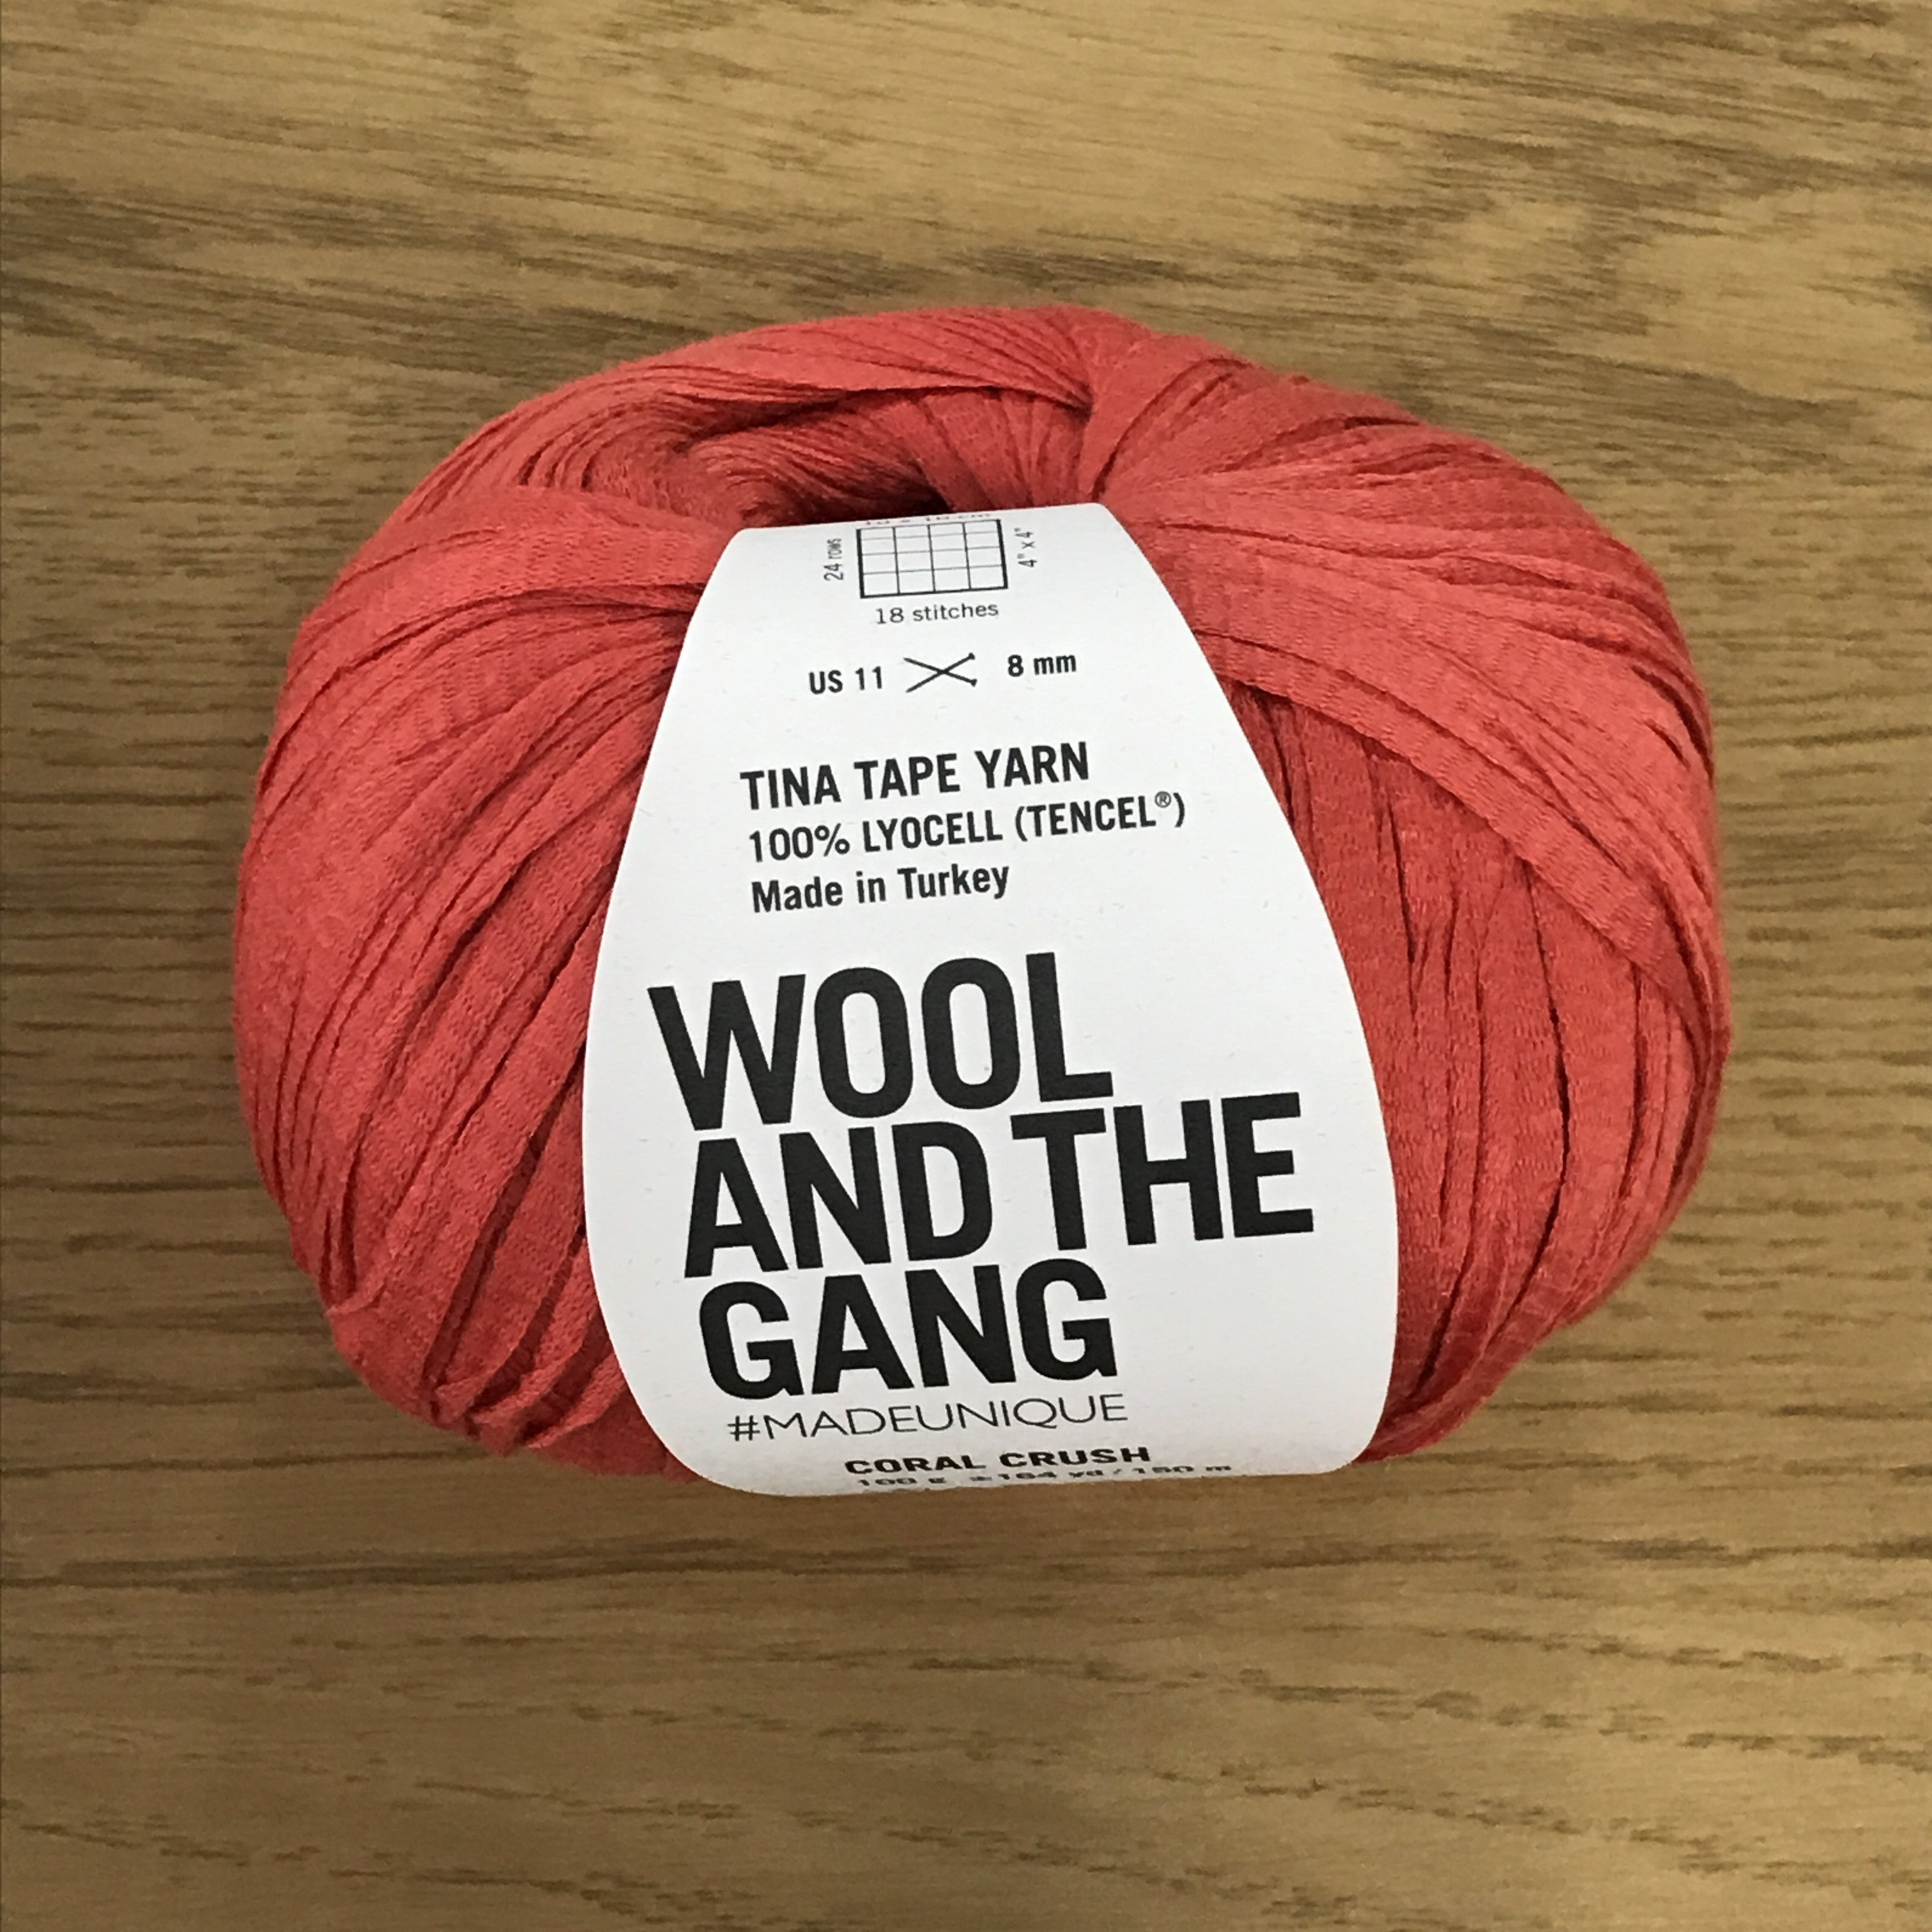 Tina Tape yarn is new from Wool and the Gang! Tencel is sourced from eucalyptus trees, vegan, and good for the environment. Softer than silk and light as air! Coral Crush